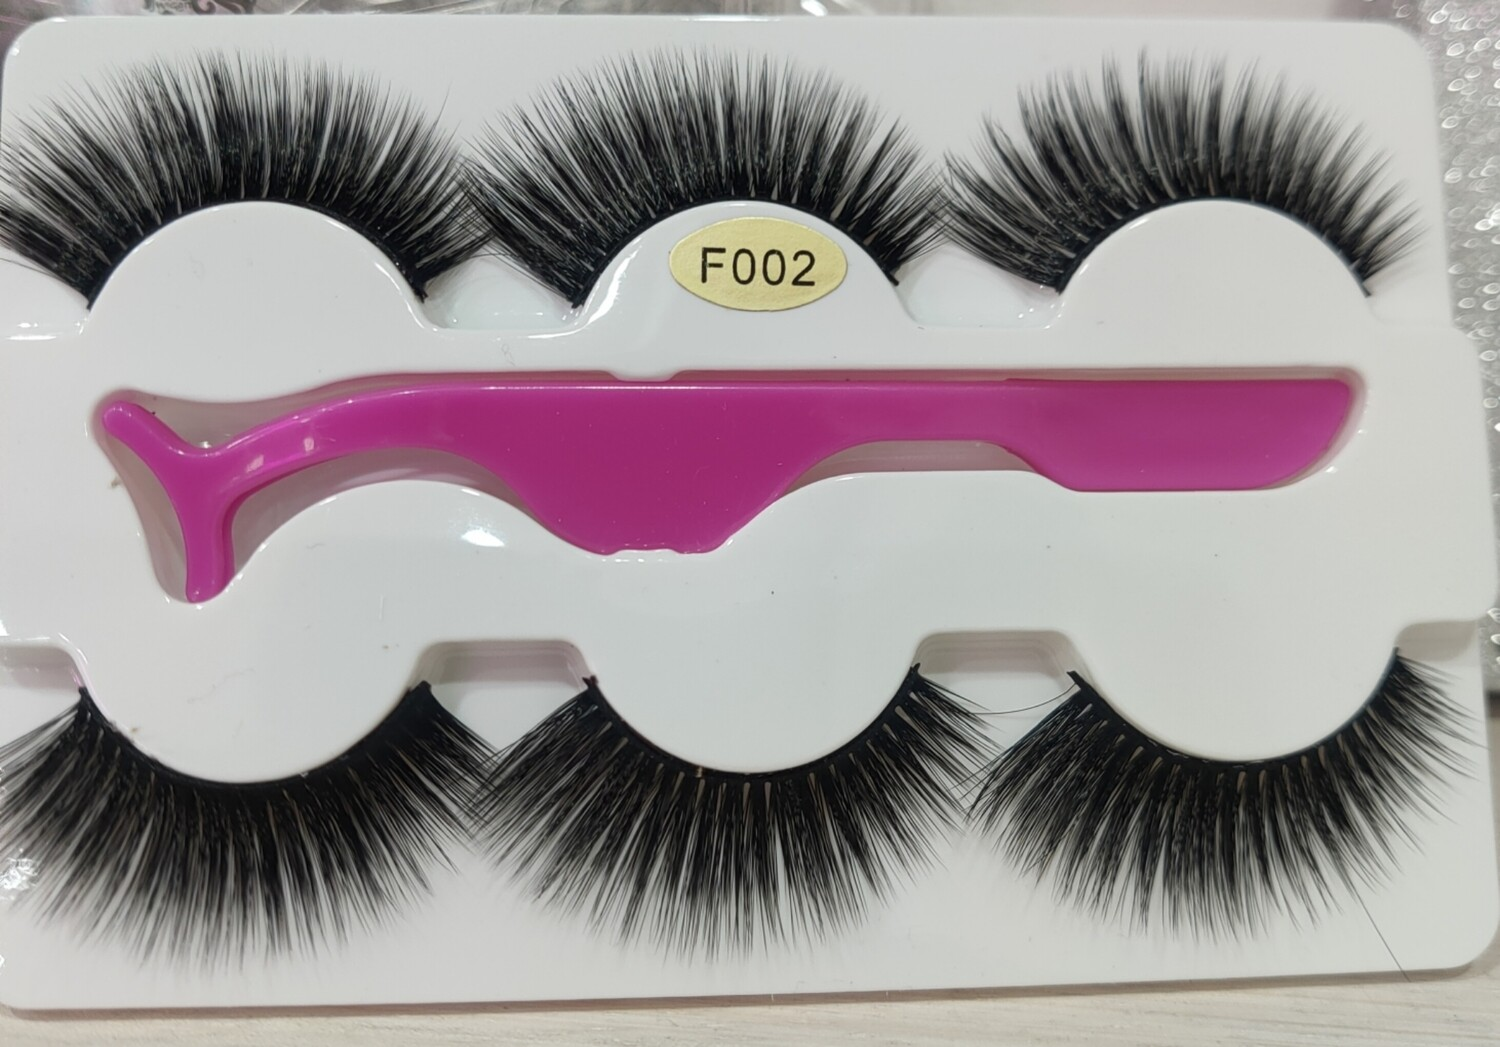 3D-8D Eye Lashes 3 pieces - Thick and Dramatic